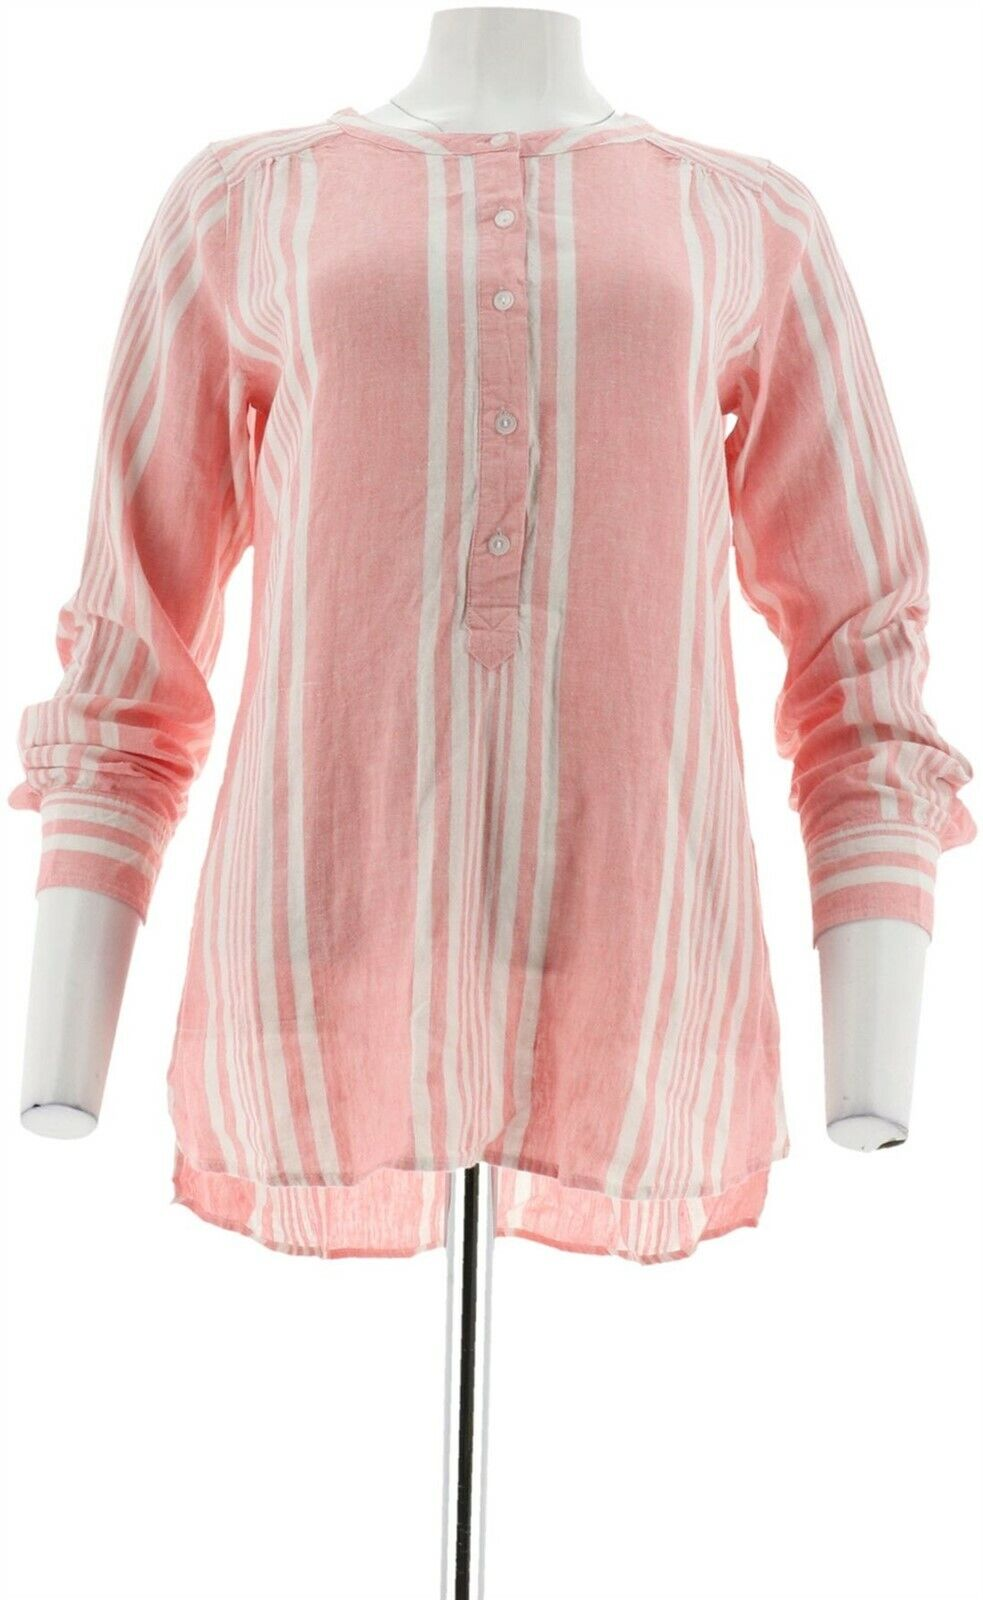 Vince Camuto Textured Grid Ruffle Slv Sheer Blouse Ultra White 2X NEW A306693